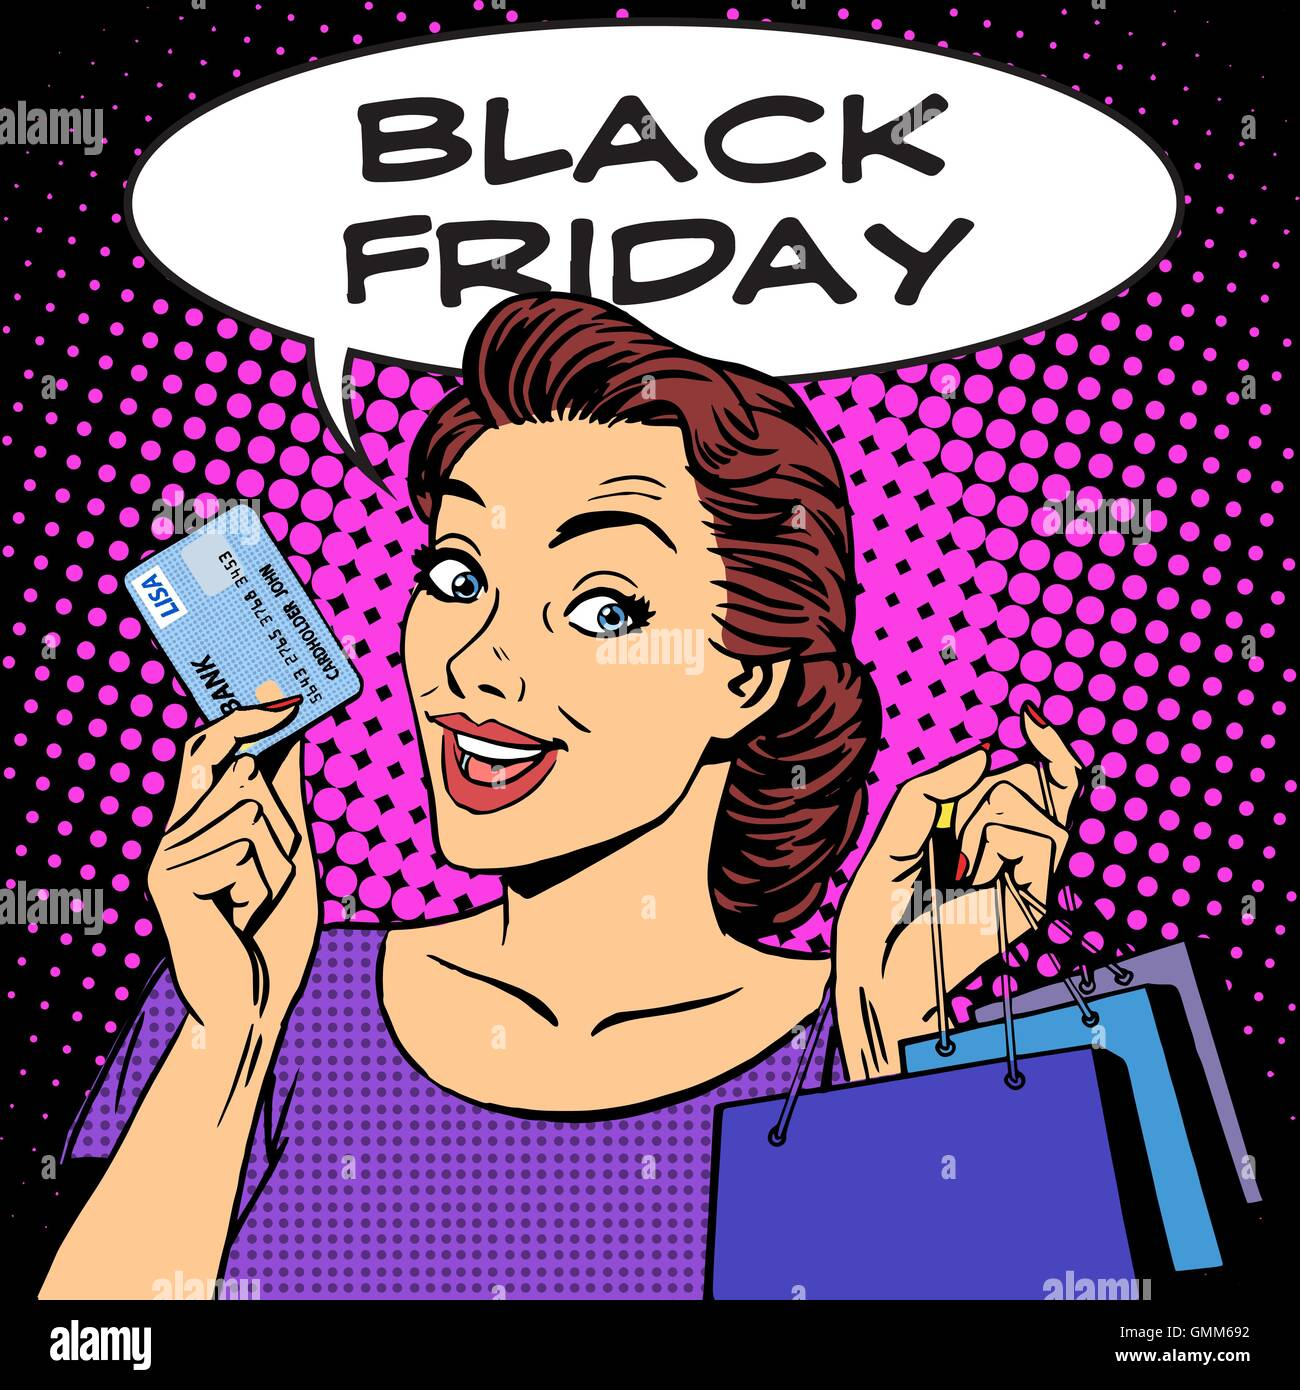 Black Friday woman with business card discounts - Stock Vector